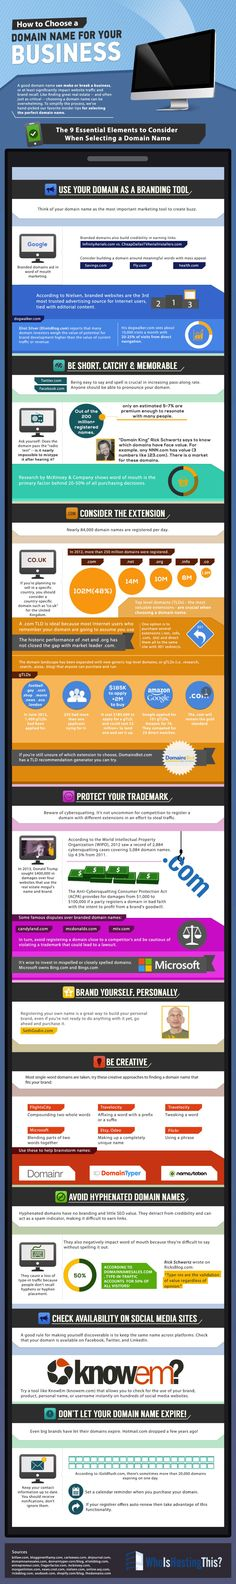 Choosing Domain Name For Your Business Why Choosing The Right Domain Name Is Important | Infographic